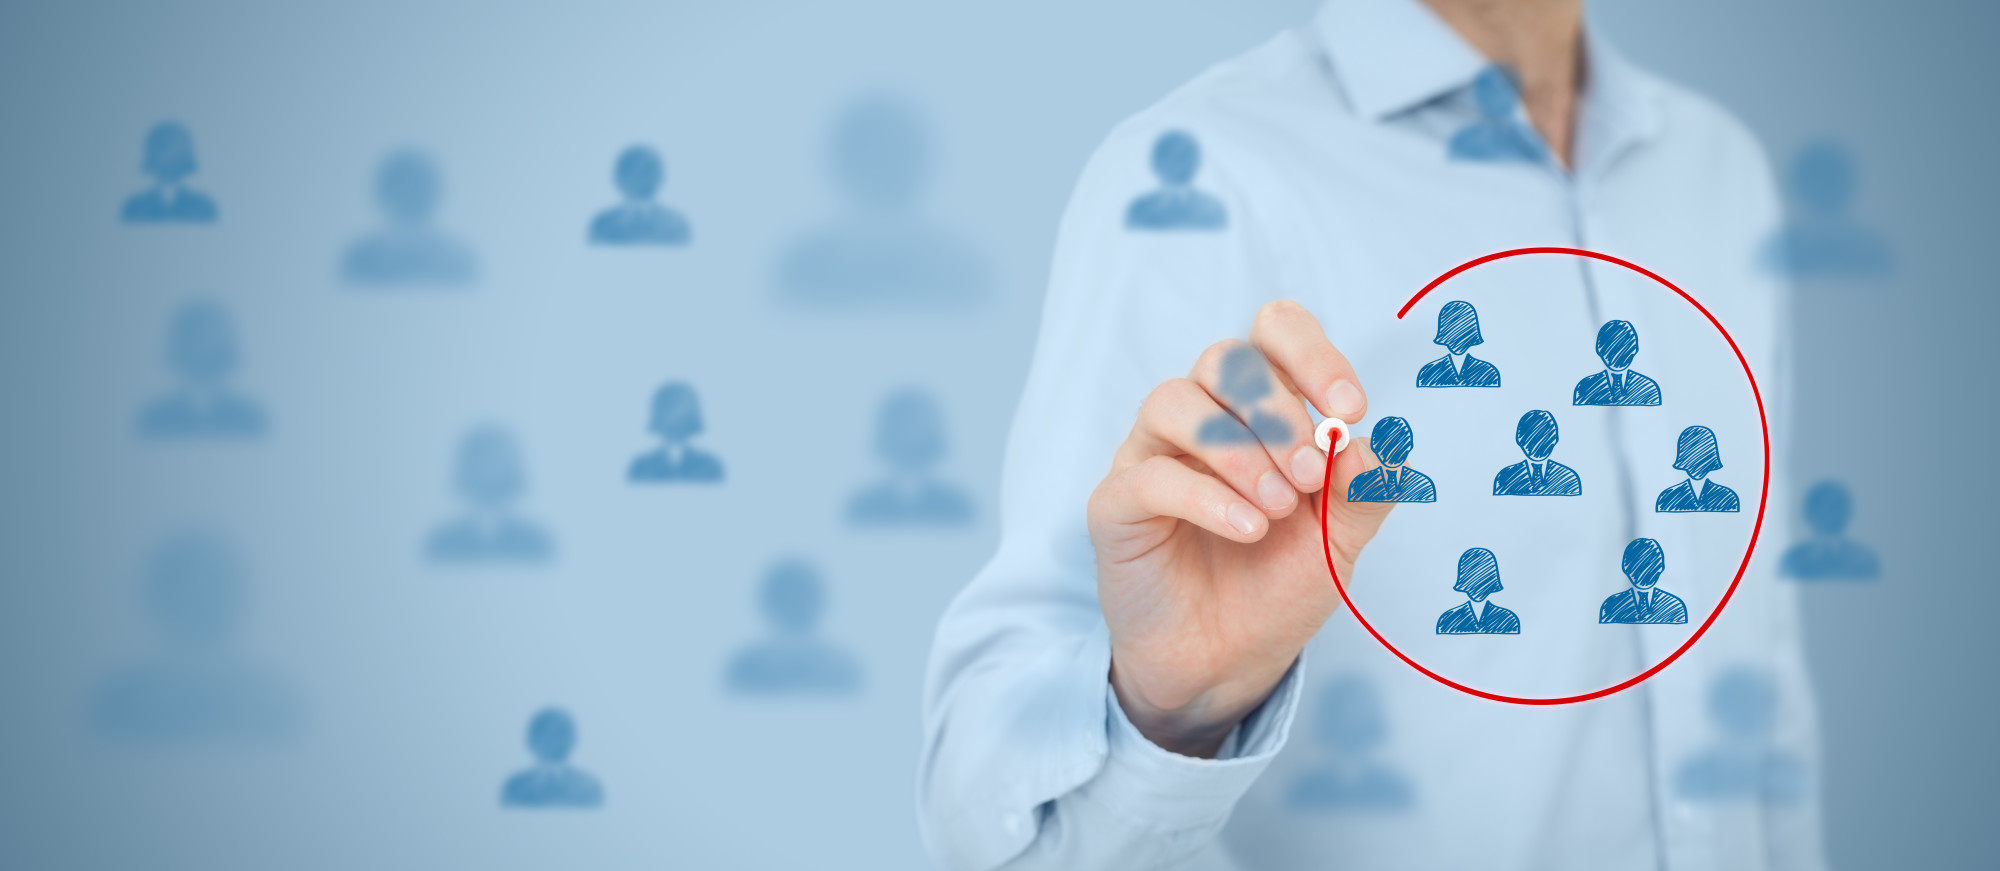 Everything You Need to Know About Customer Segmentation